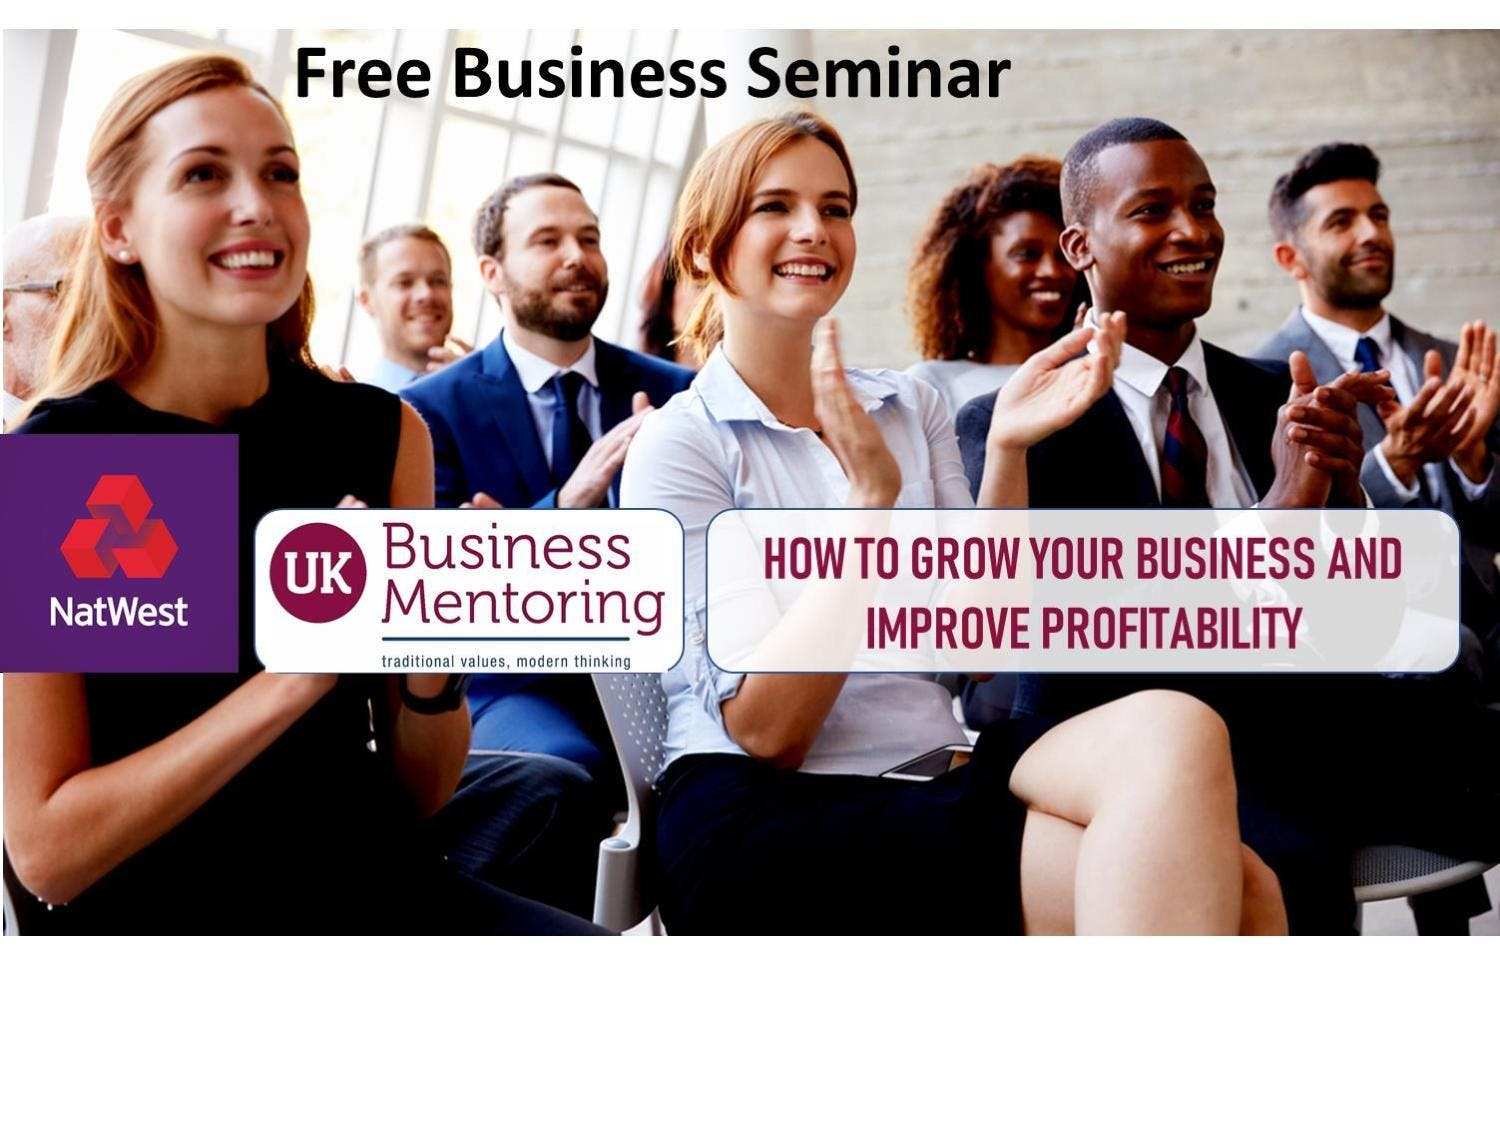 How to Grow Your Business and Improve Profitability